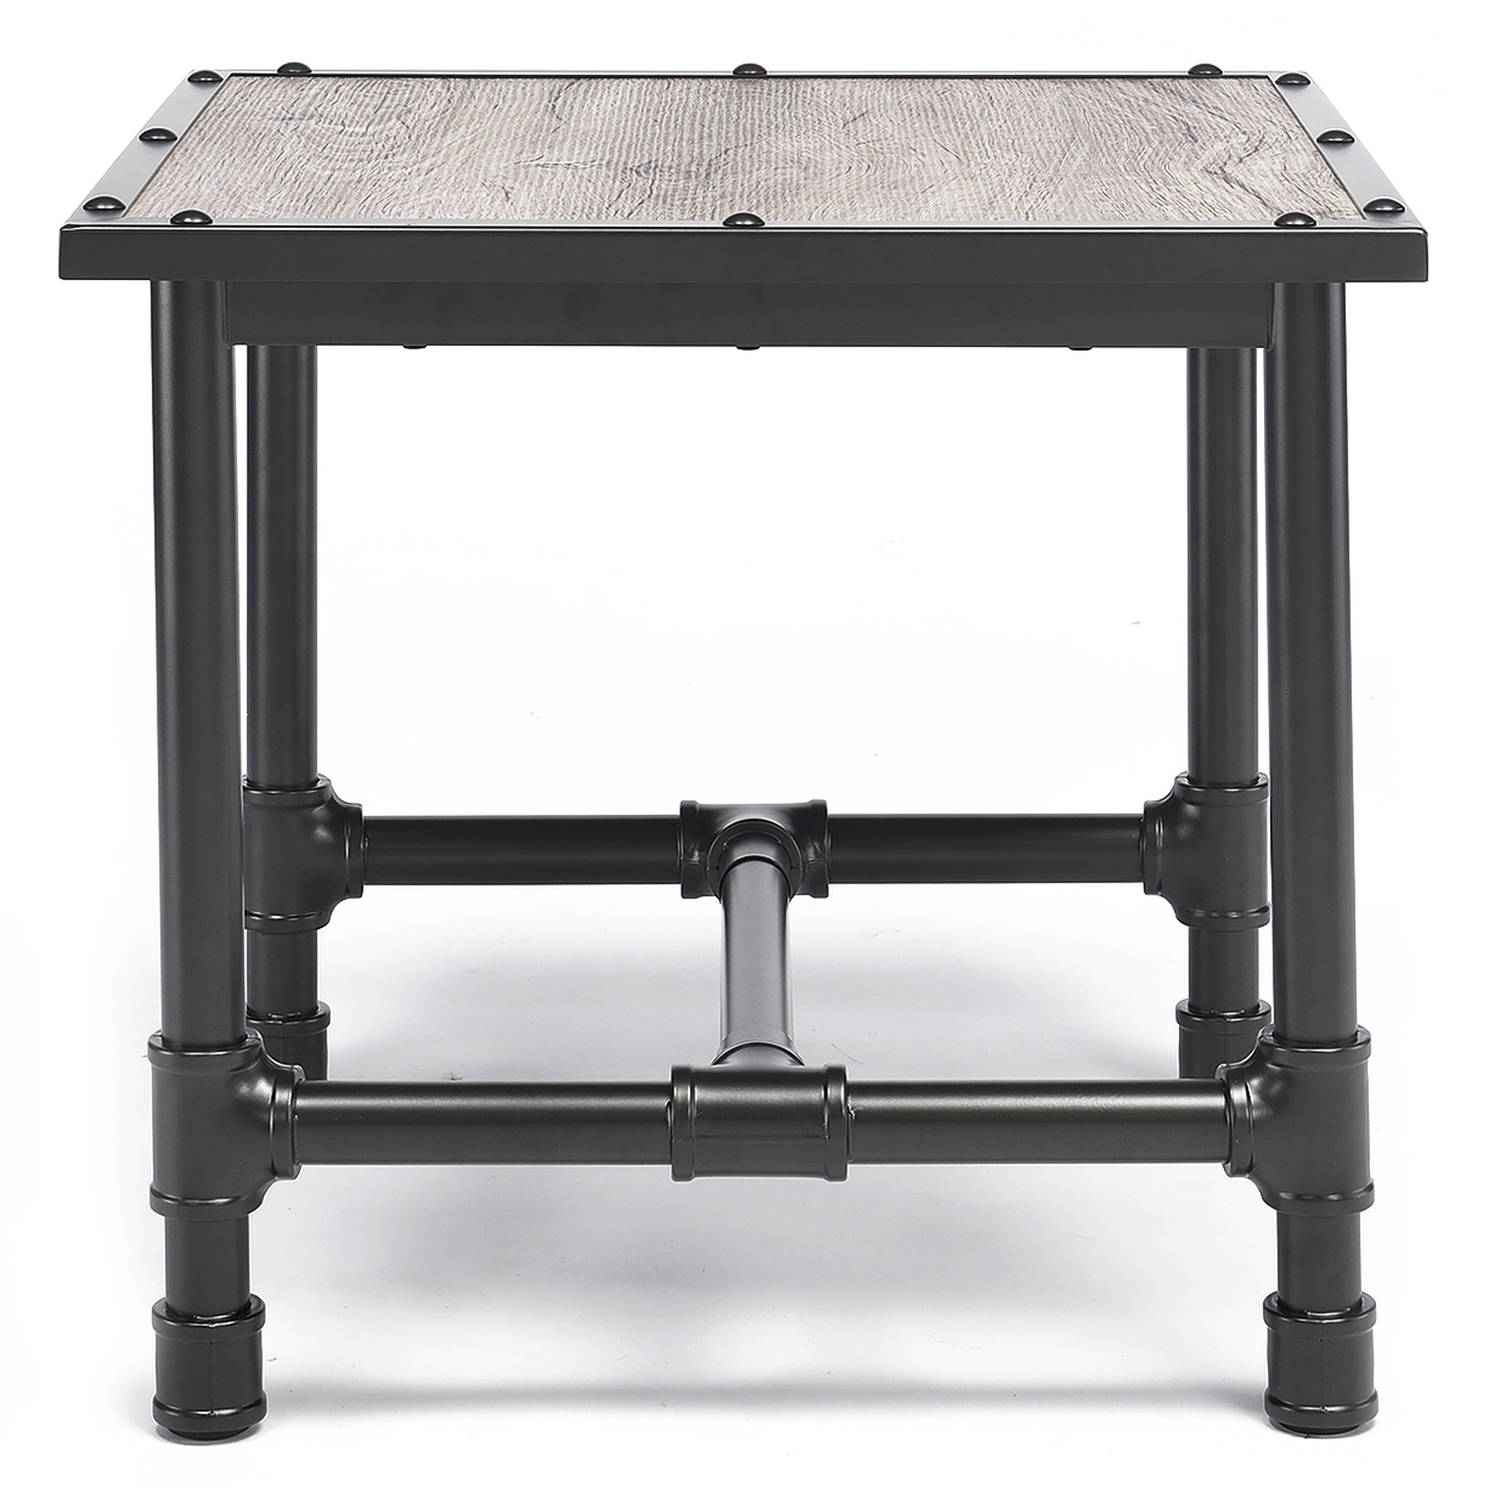 ACME Caitlin End Table, Rustic Oak and Black by Acme Furniture